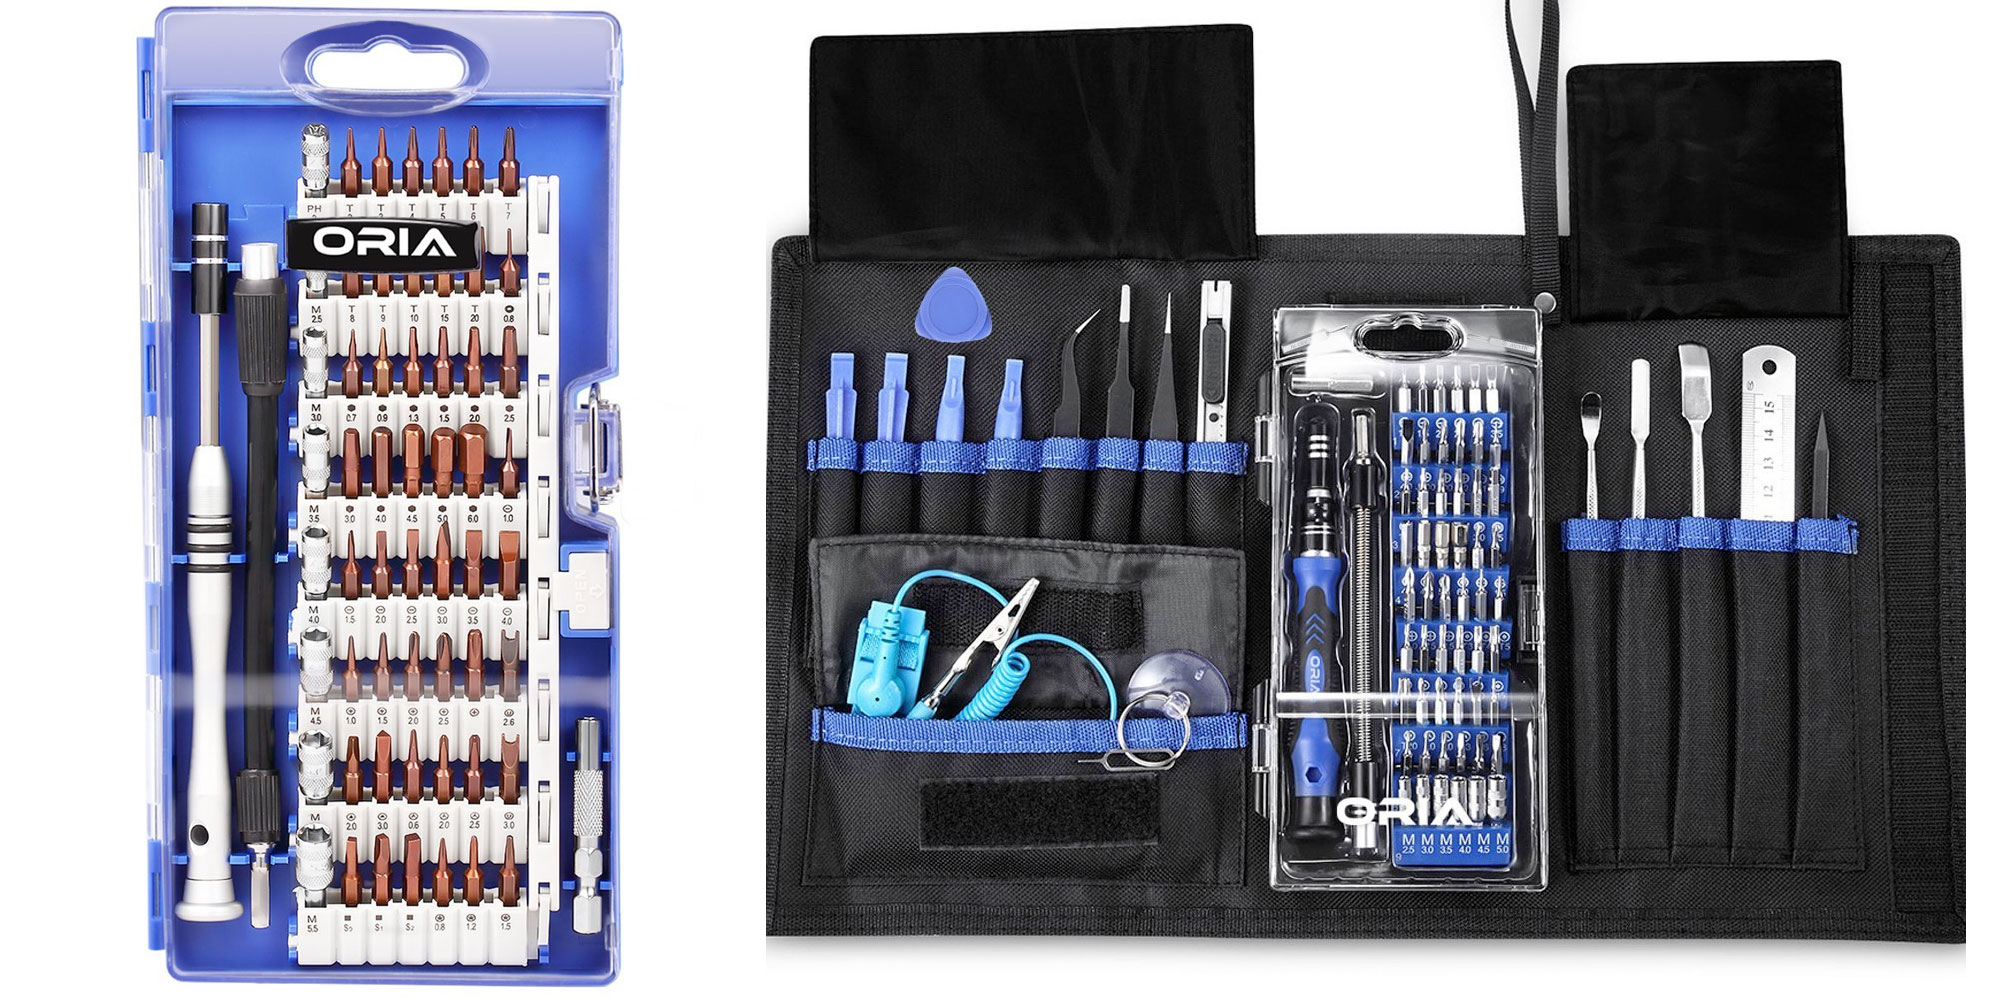 Repair any piece of tech w/ these precision screwdriver kits from $10.50 Prime shipped